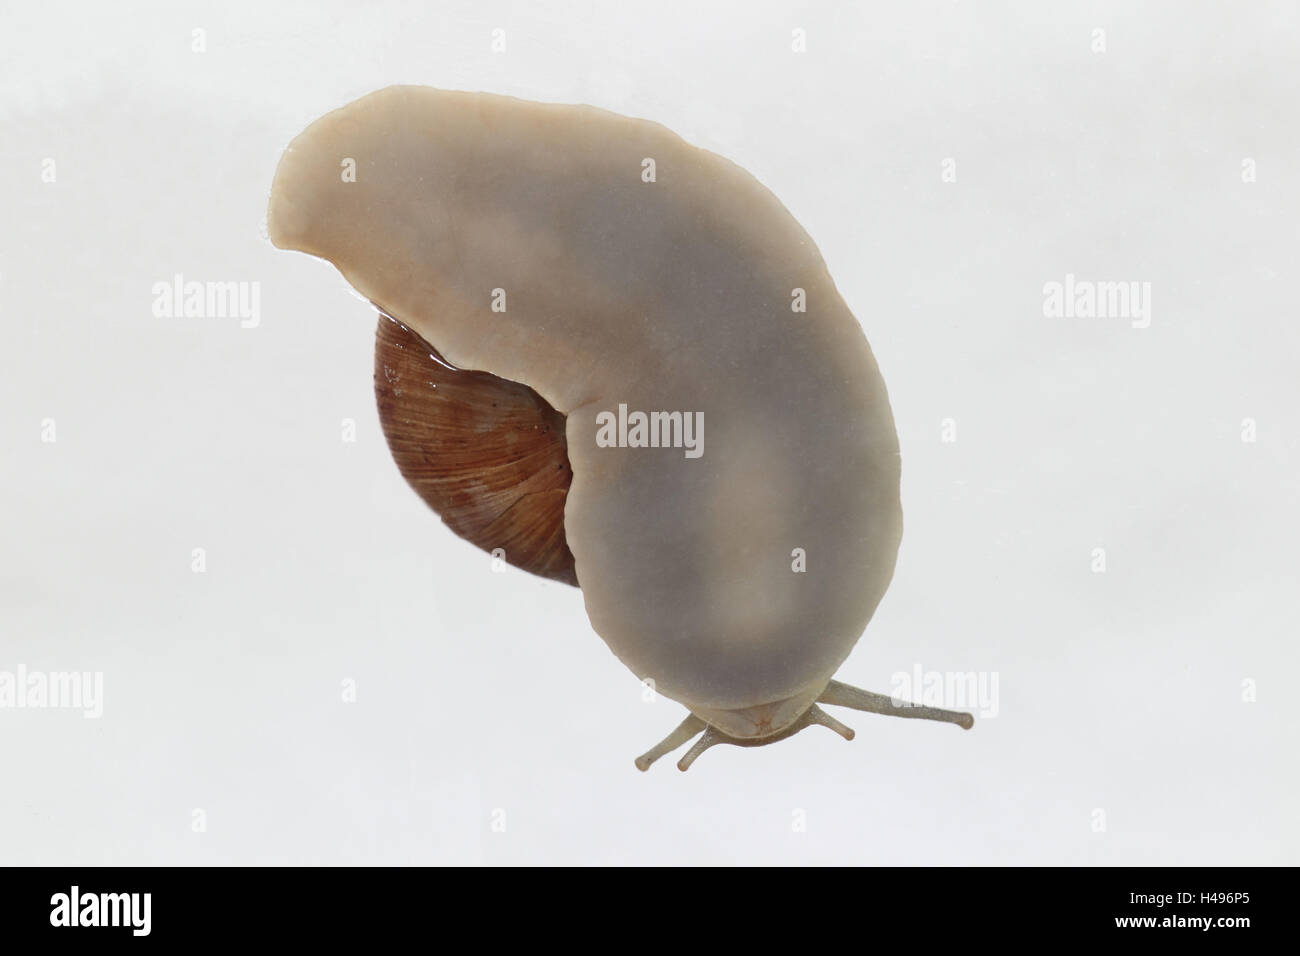 Escargot, Edible snail, from below, - Stock Image